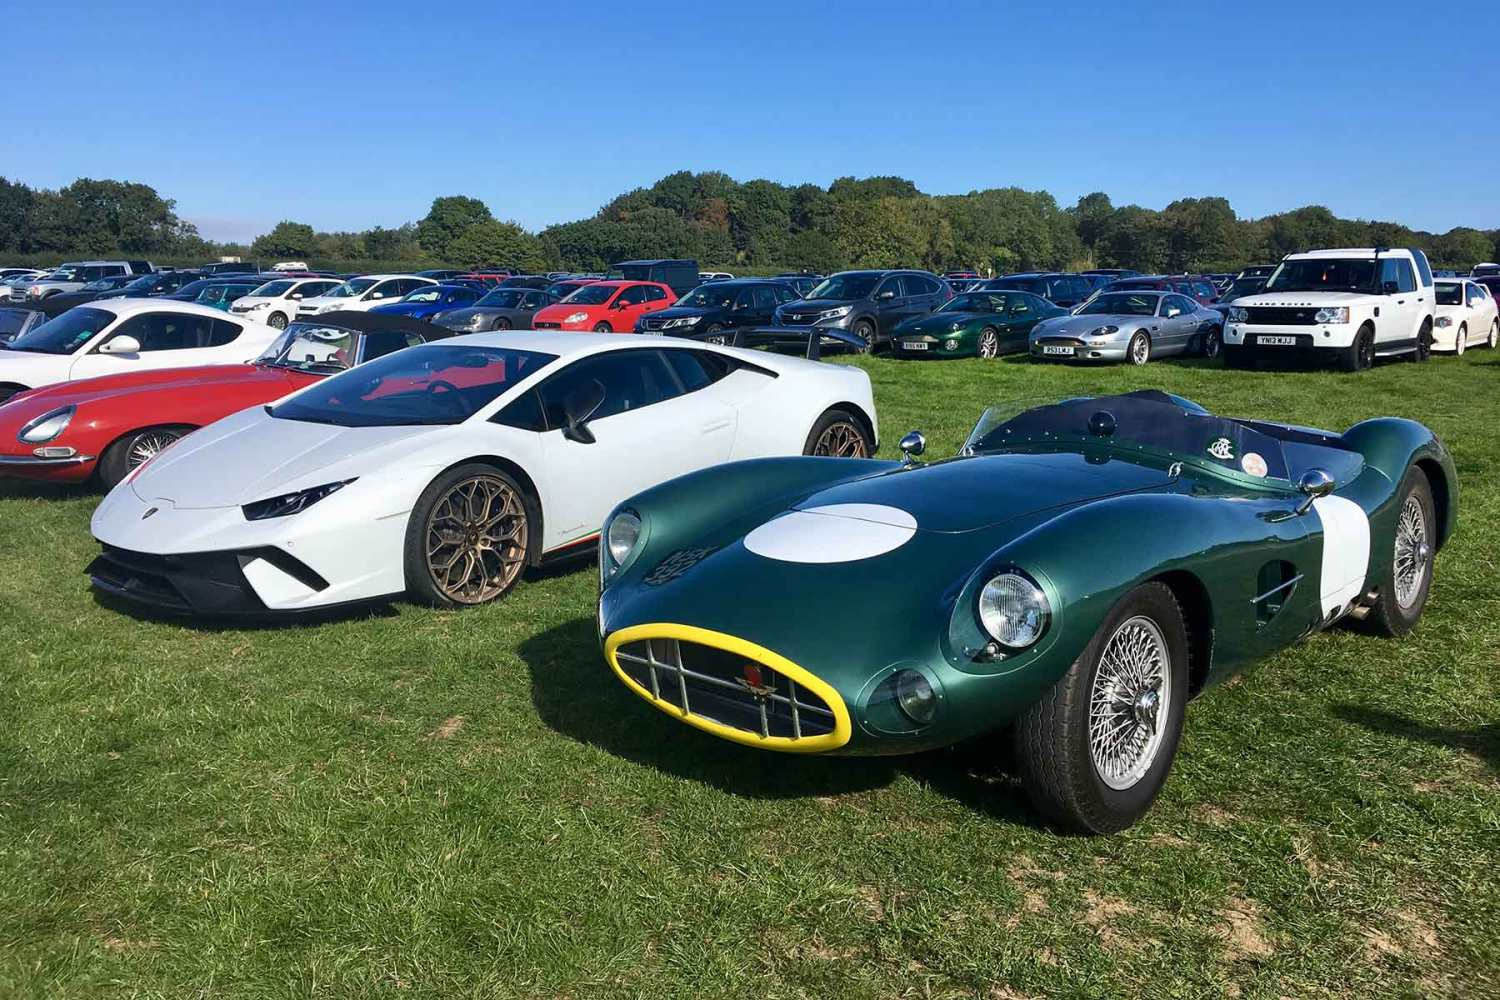 Amazing cars of the Goodwood Revival car park